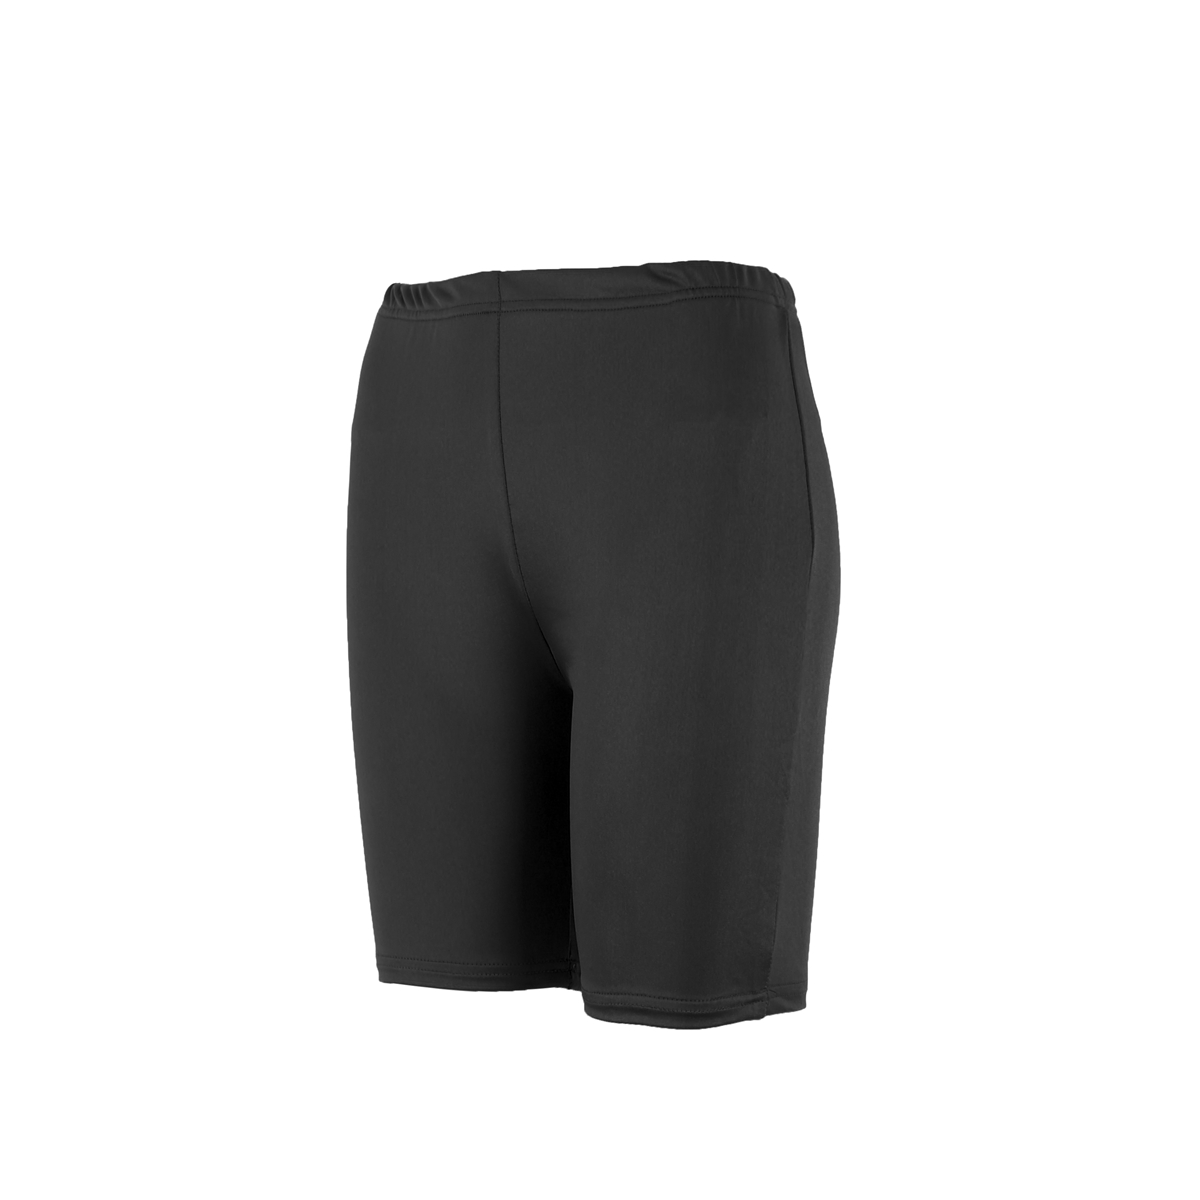 Women Solid Elastic Compression Yoga Shorts High Waist Tights Bottom